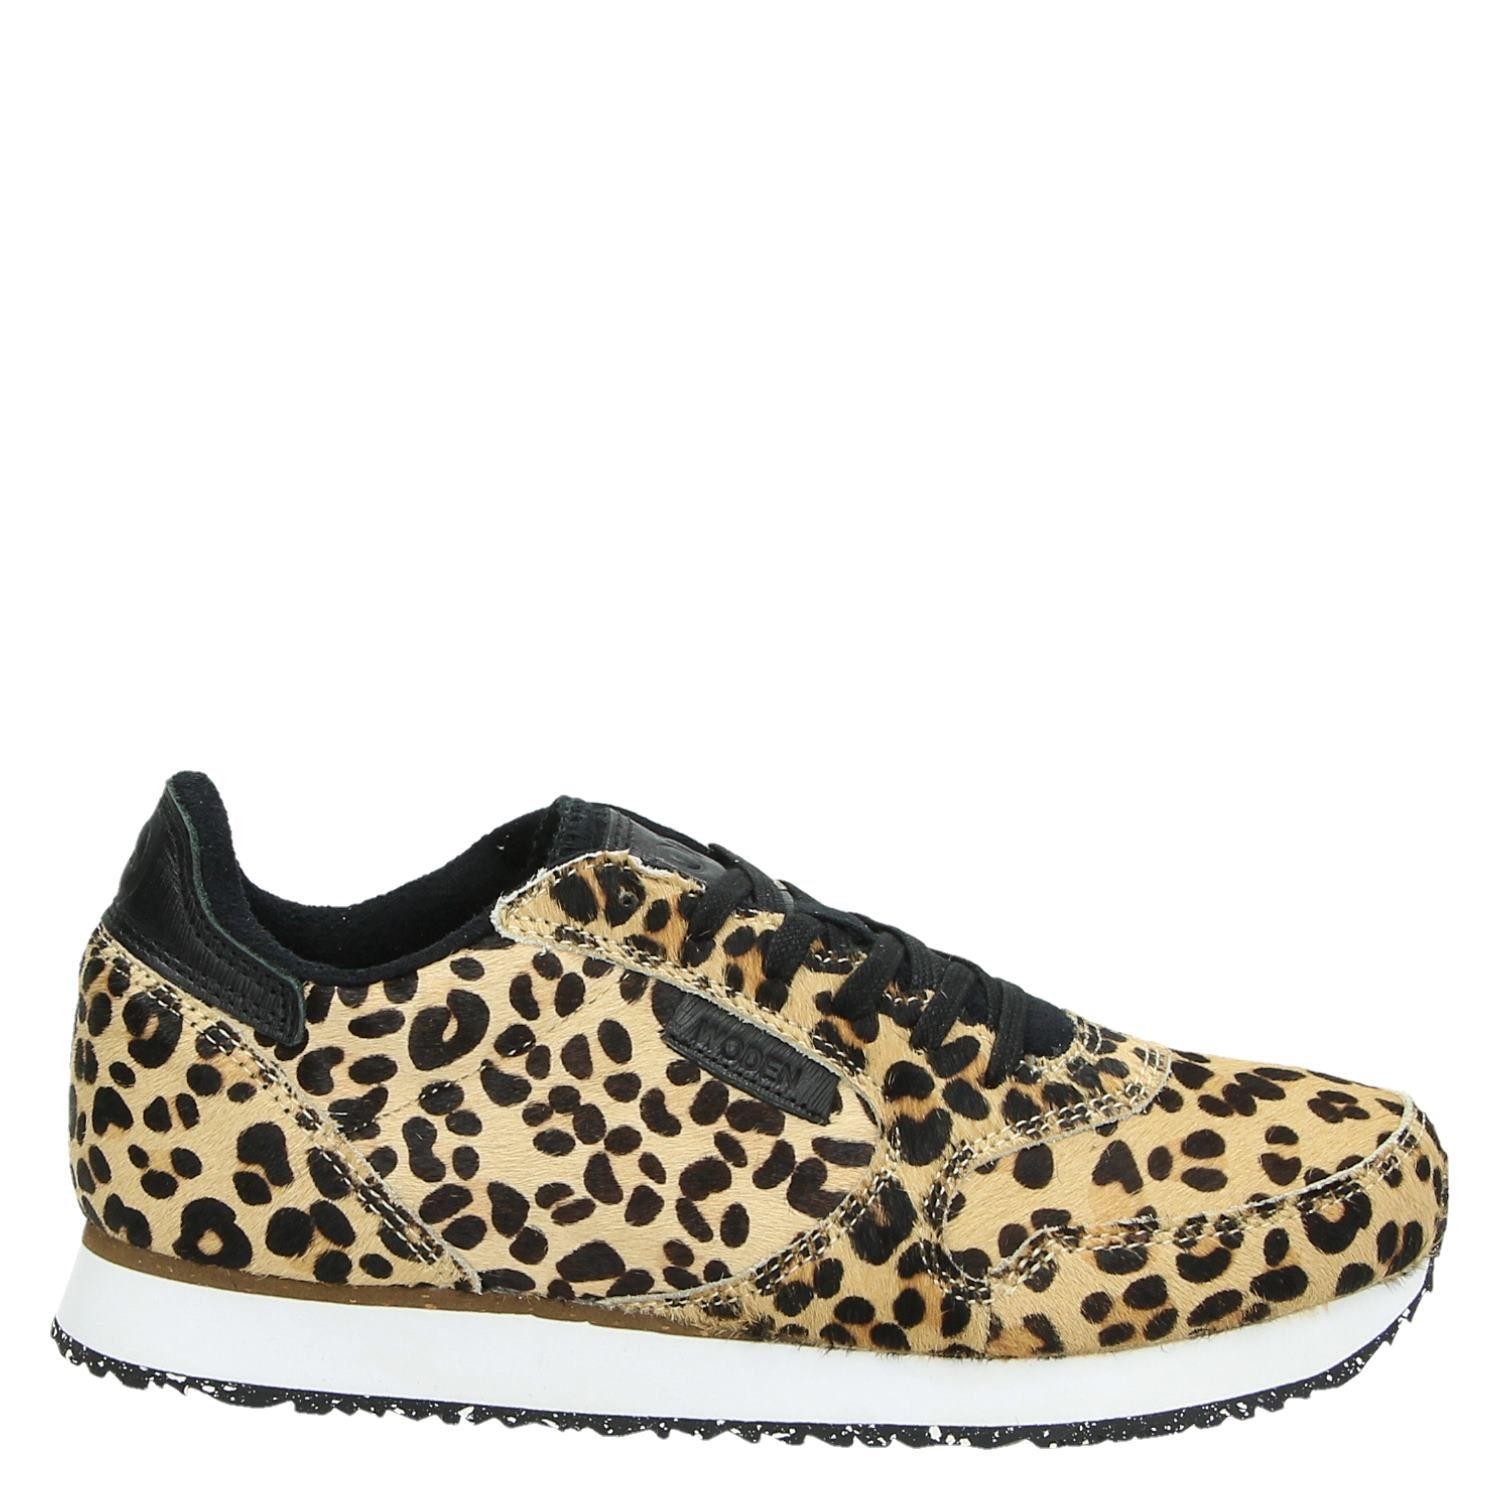 Sneakers Lage Woden Pony Multi Ydunnll Dames zgg0wPq